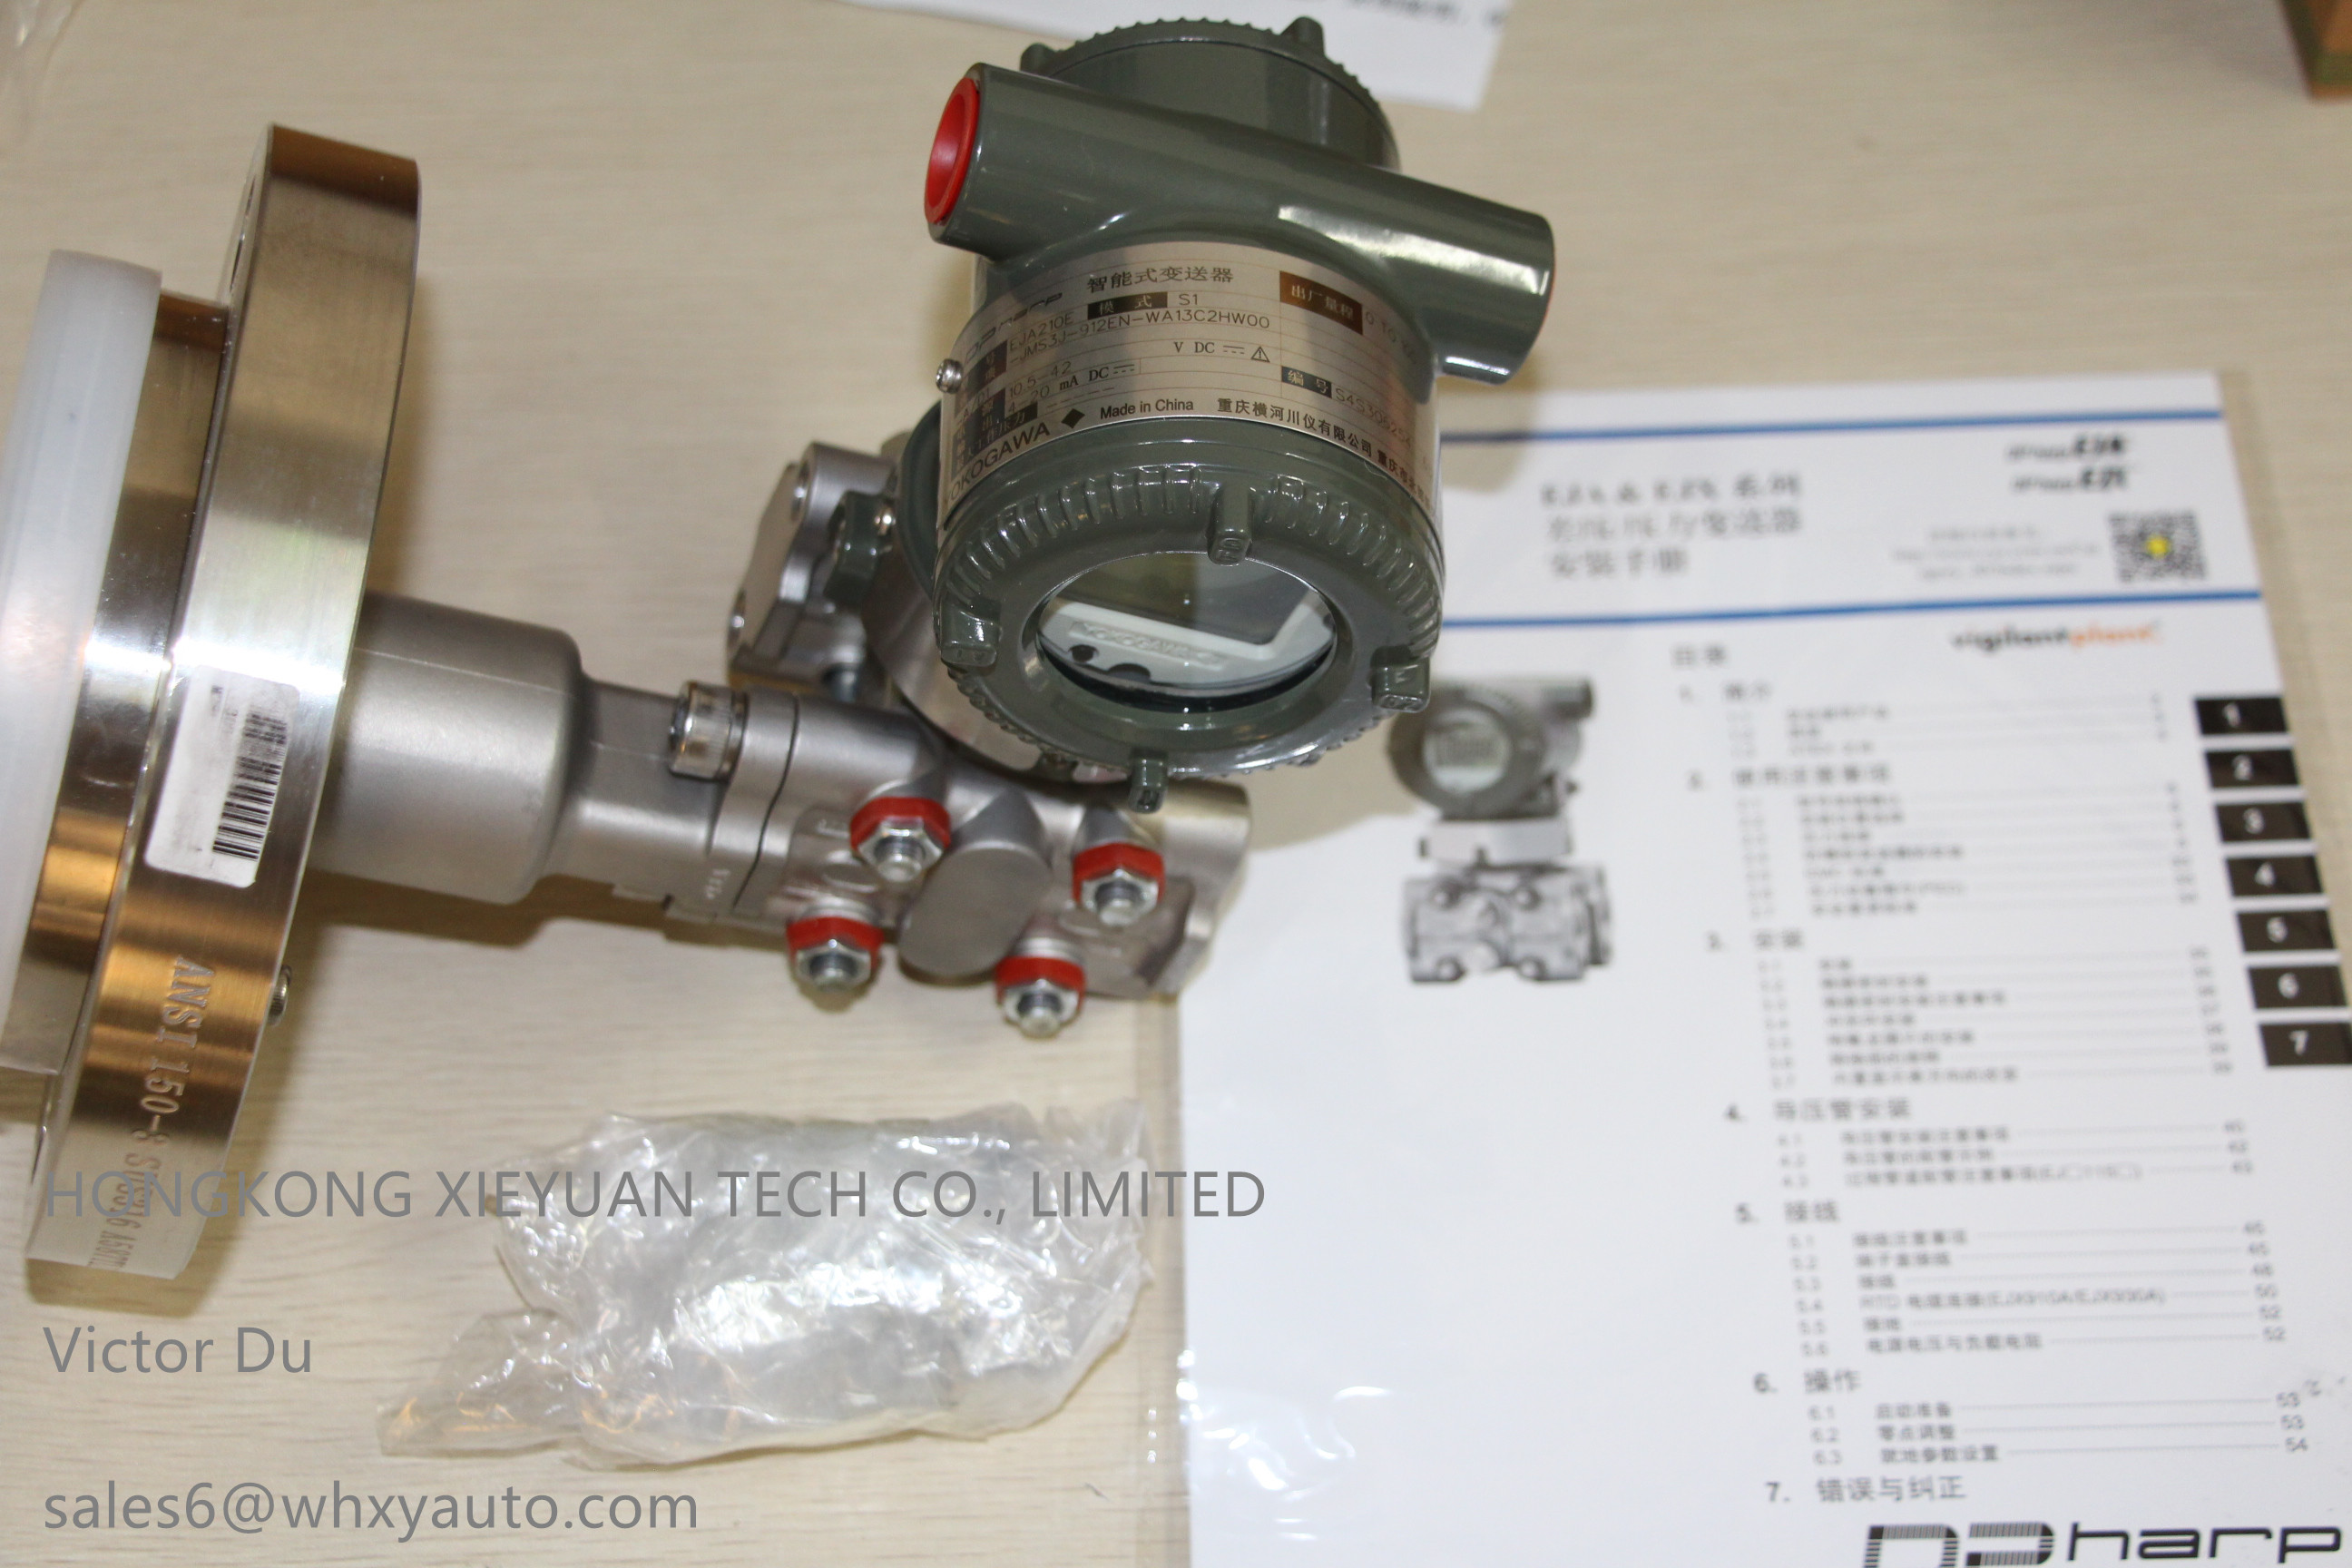 Yokogawa new differential pressure transmitter EJA510E-DAS4N-012DL/D4